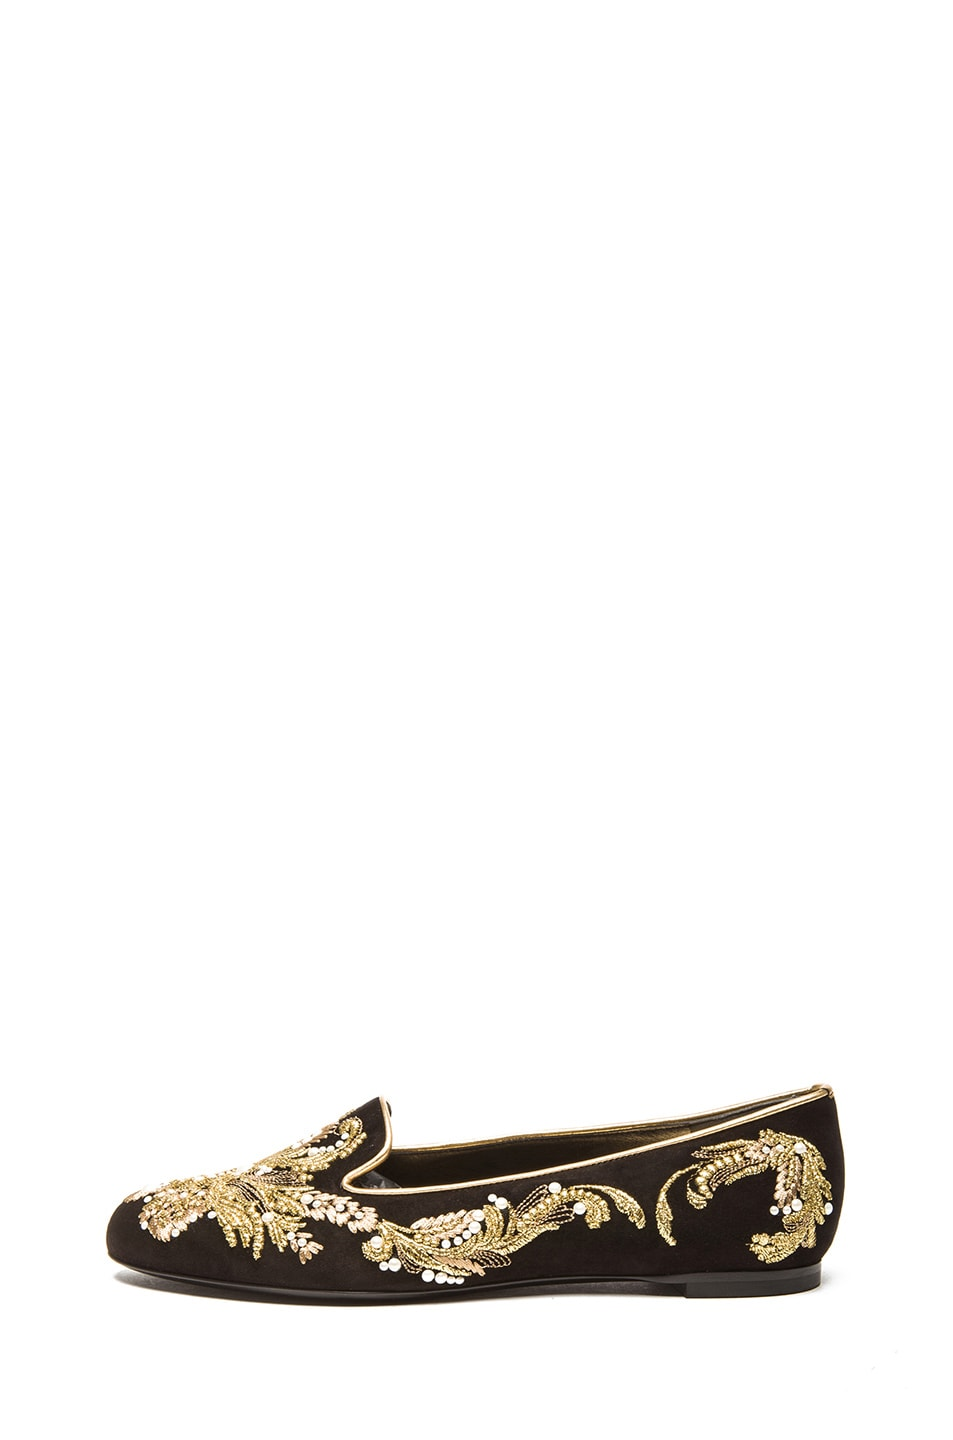 Image 1 of Alexander McQueen Embroidered Suede Flat in Black